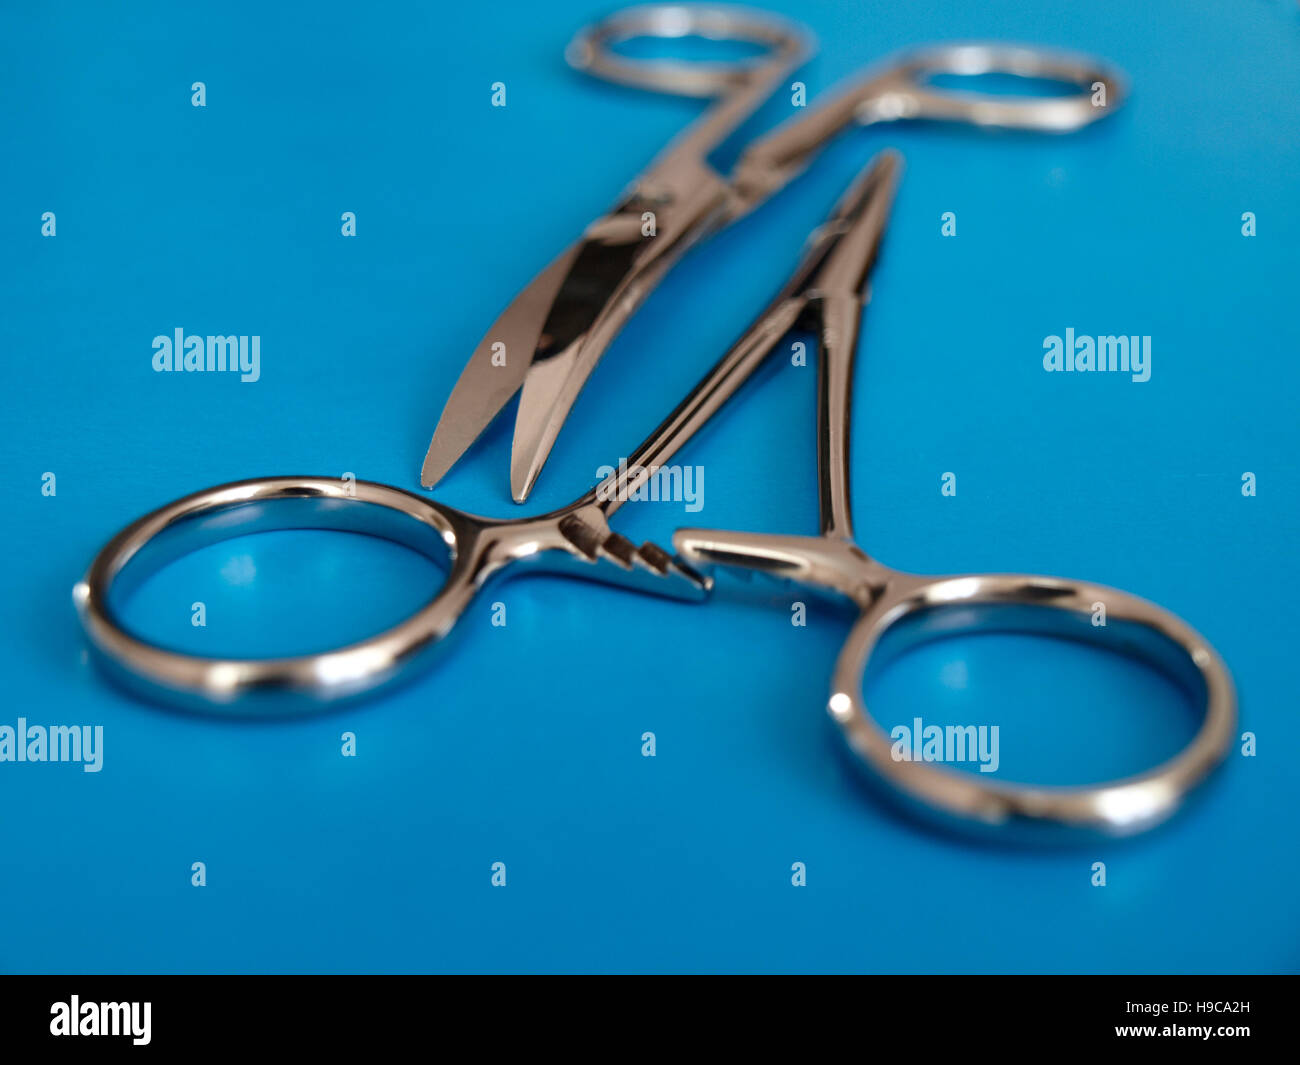 Surgical instruments: scissors and forceps - Stock Image